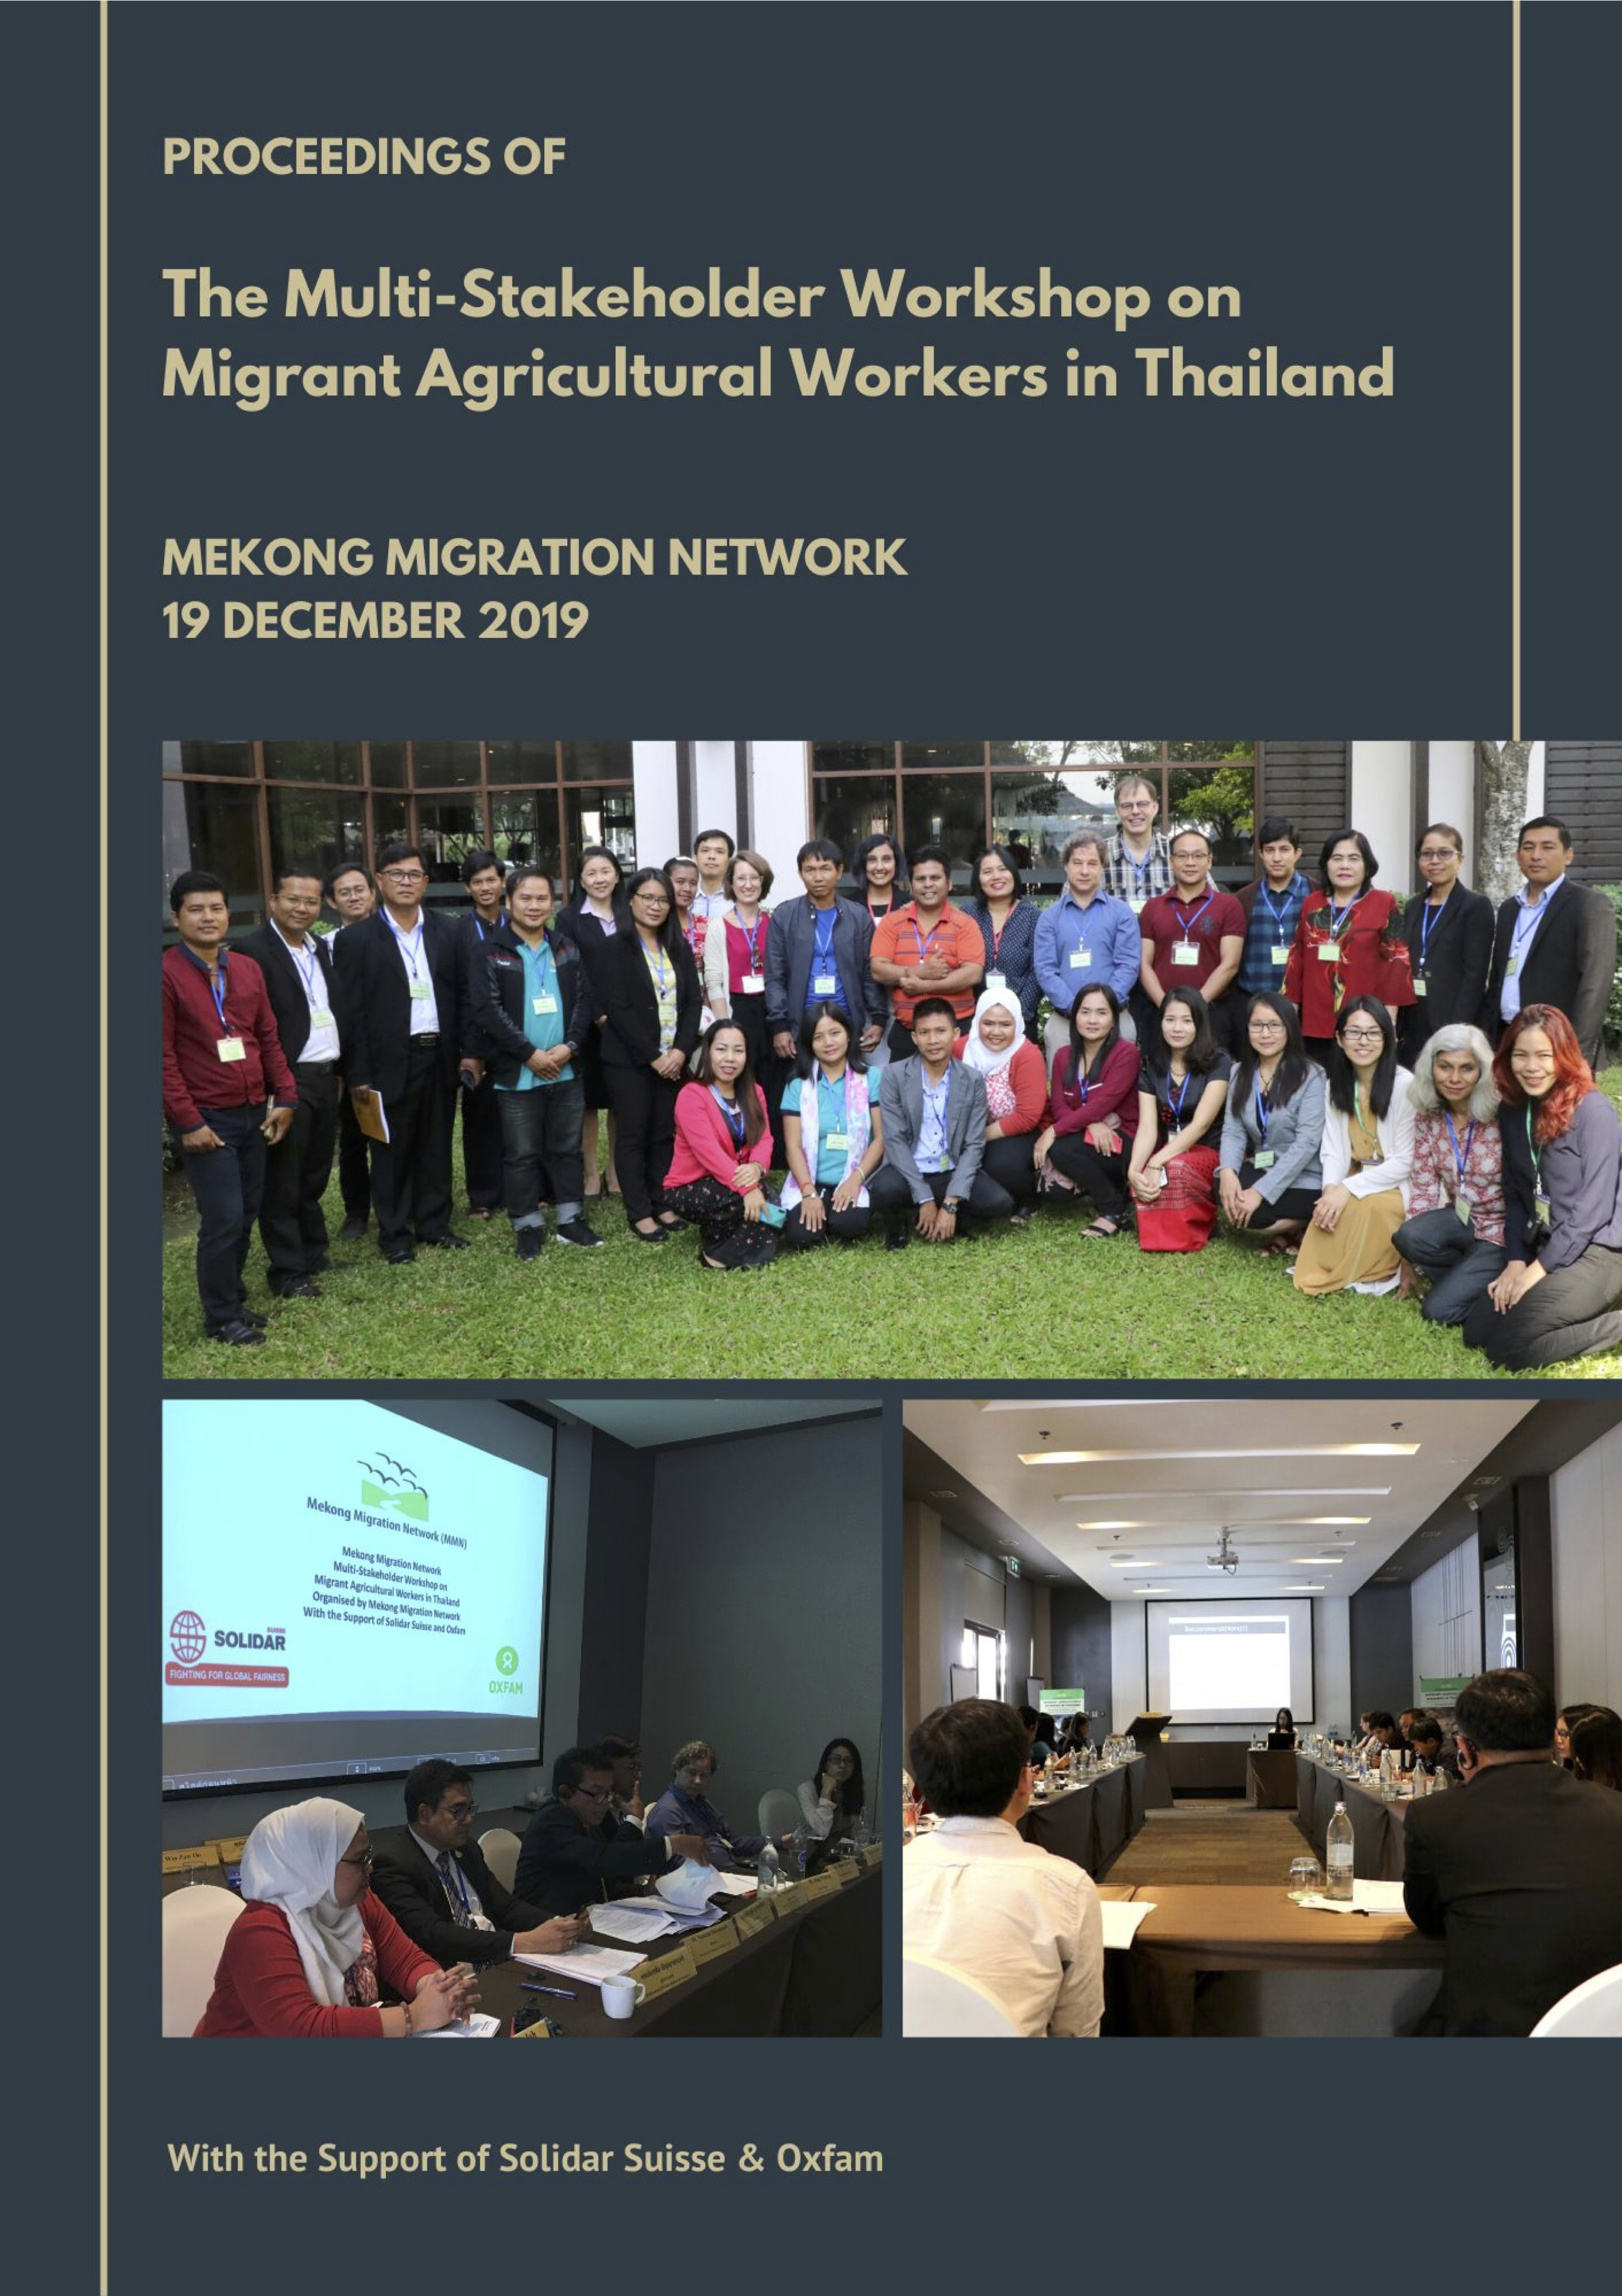 Proceedings of Migrant Agricultural Workers in Thailand (1)